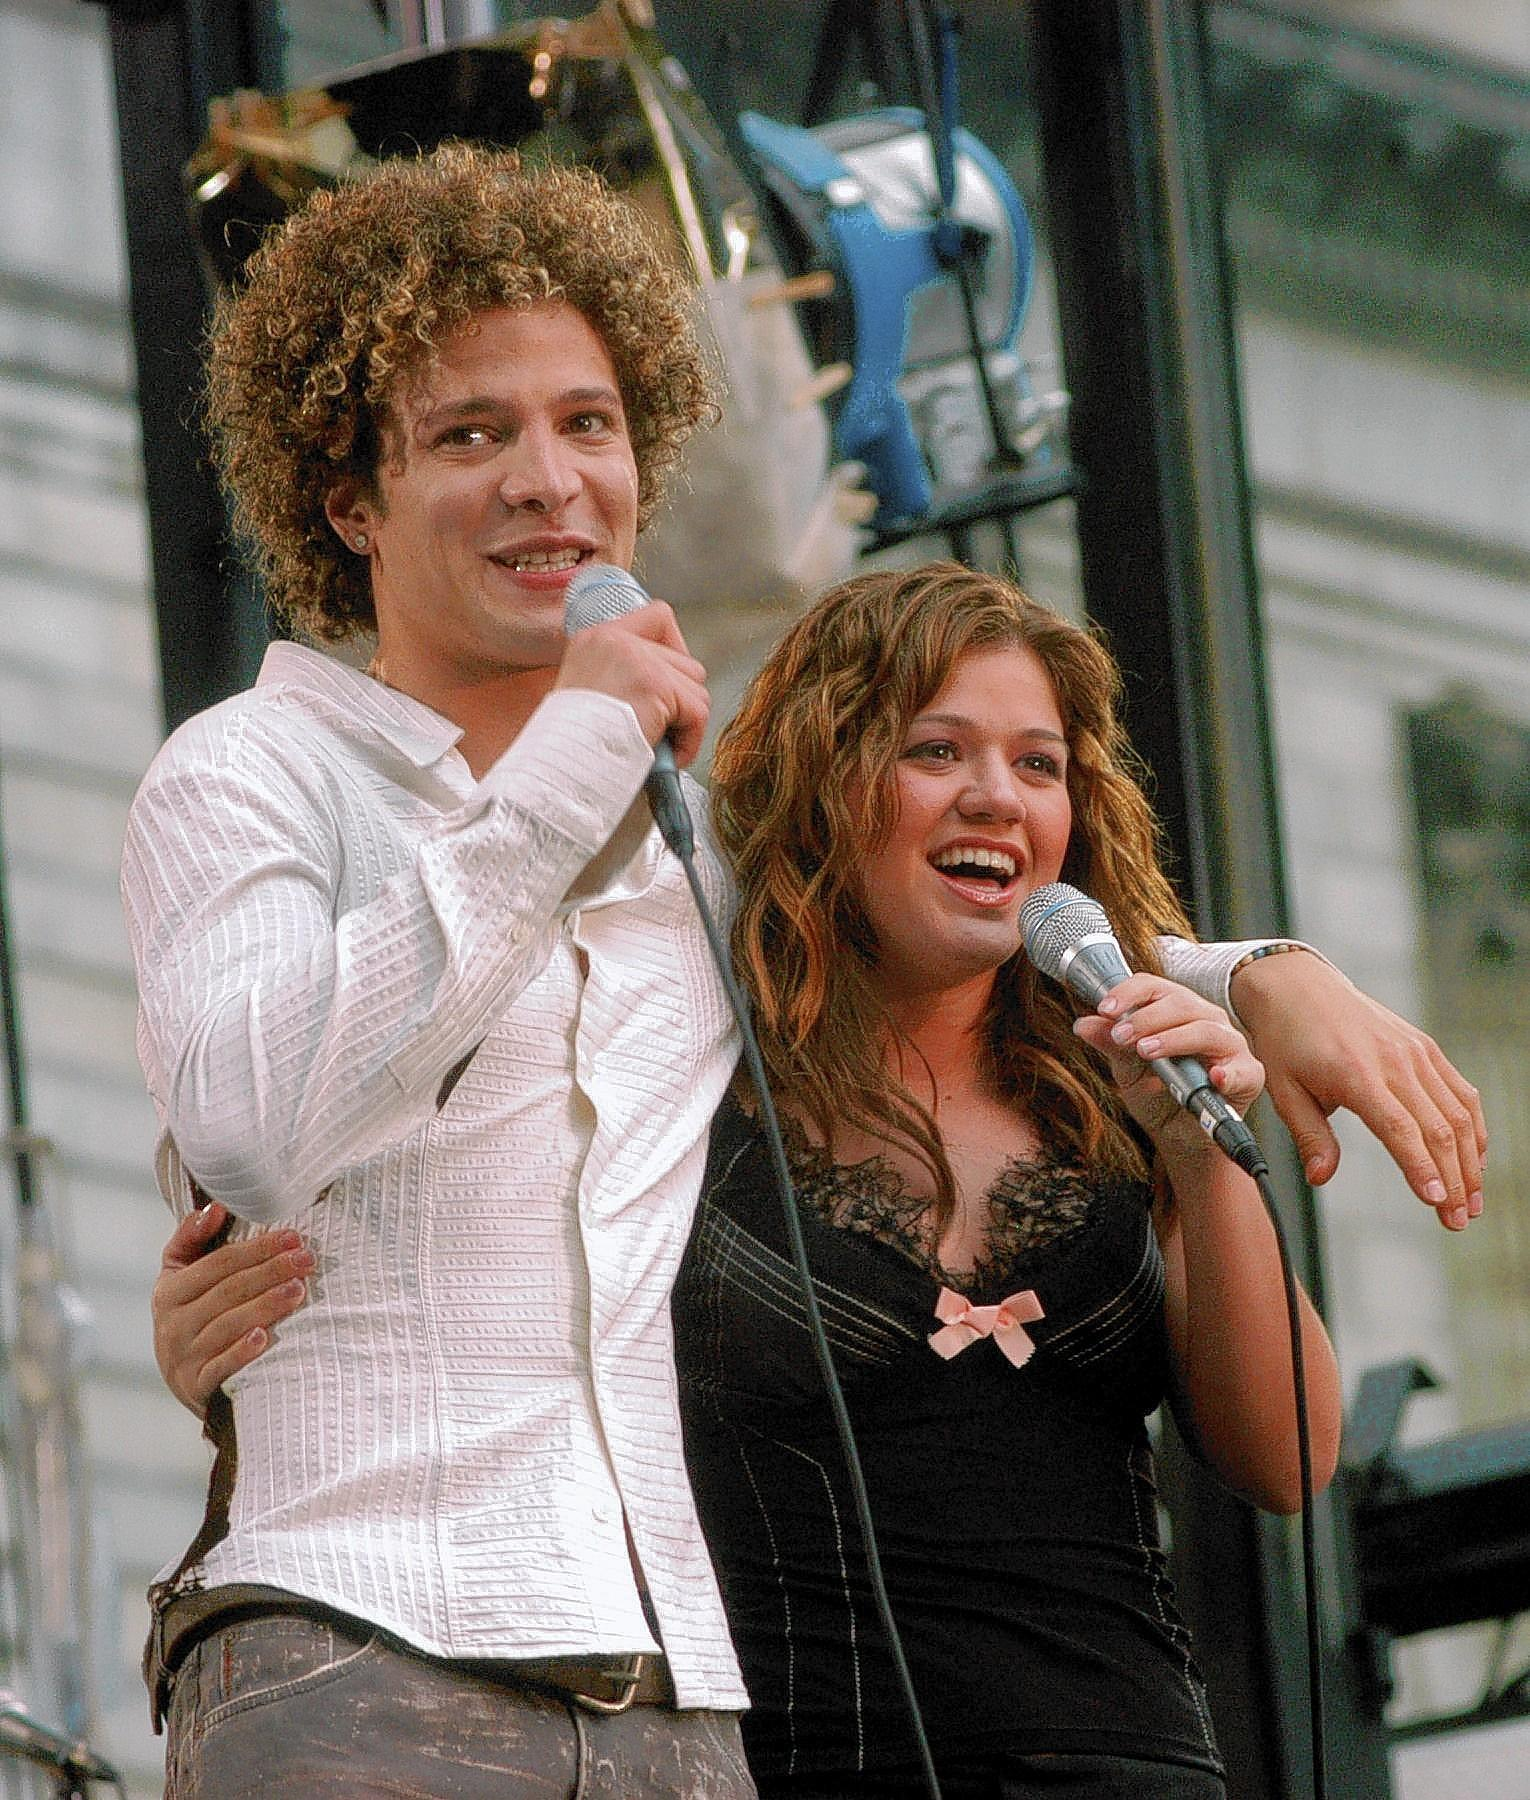 Justin Guarini and Kelly Clarkson perform during 'Good Morning America's' 2003 Concert Series. Guarini reveals in his one-man cabaret show last weekend that the two had an affair.